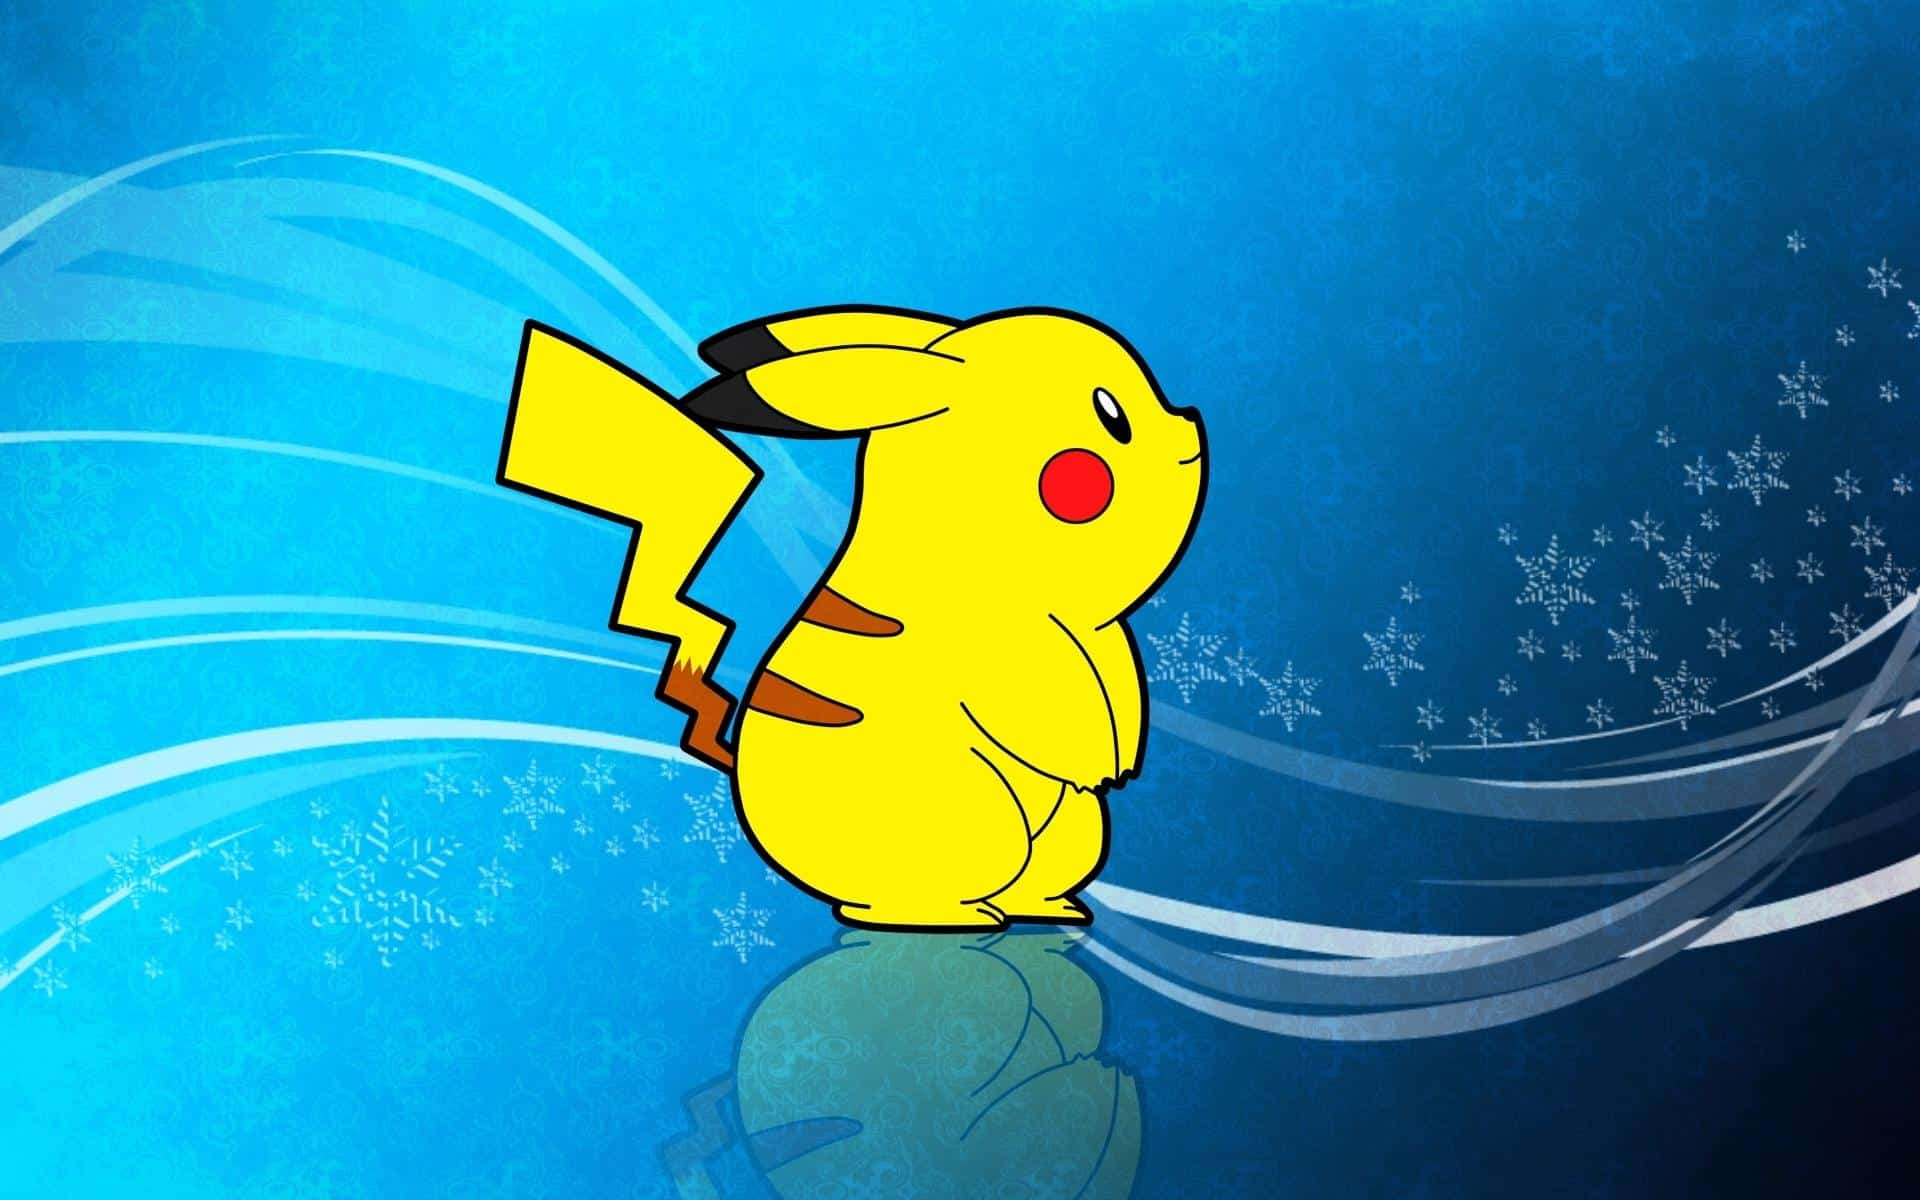 Pikachu pokemon yellow anime HD wallpaper including awesome and cool coloring pages 1 on awesome and cool coloring pages also awesome and cool coloring pages 2 on awesome and cool coloring pages furthermore awesome and cool coloring pages 3 on awesome and cool coloring pages additionally awesome and cool coloring pages 4 on awesome and cool coloring pages